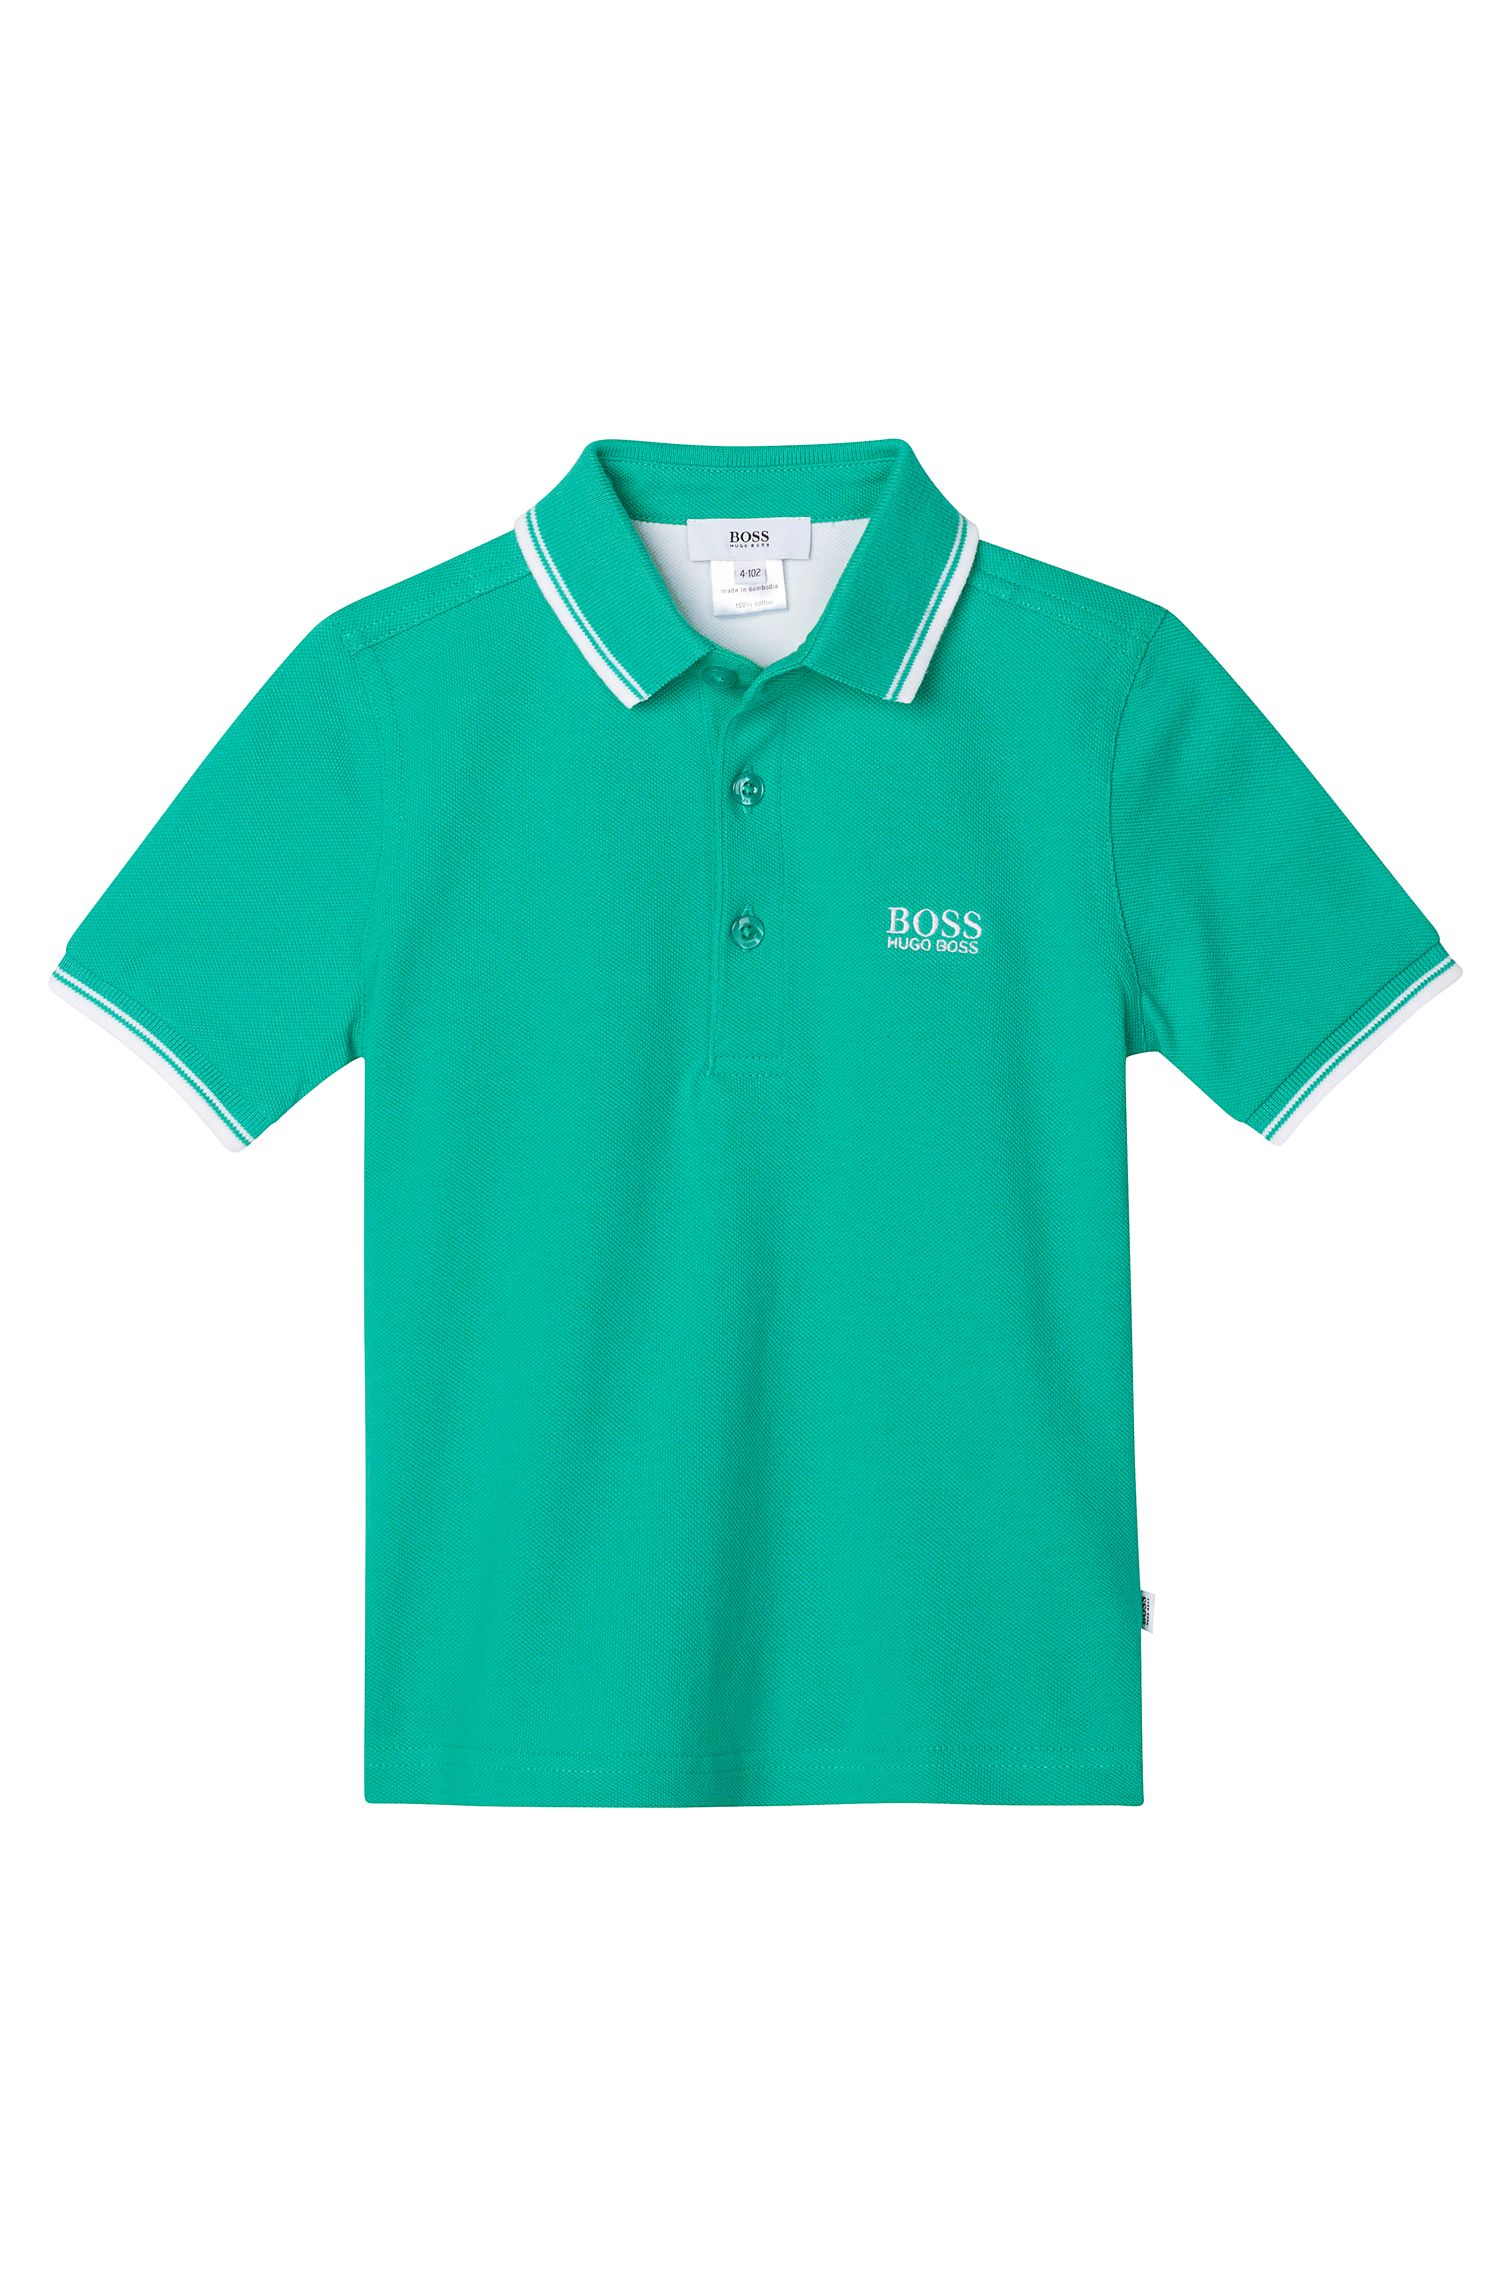 'J25910' | Toddler Cotton Pique Polo Shirt